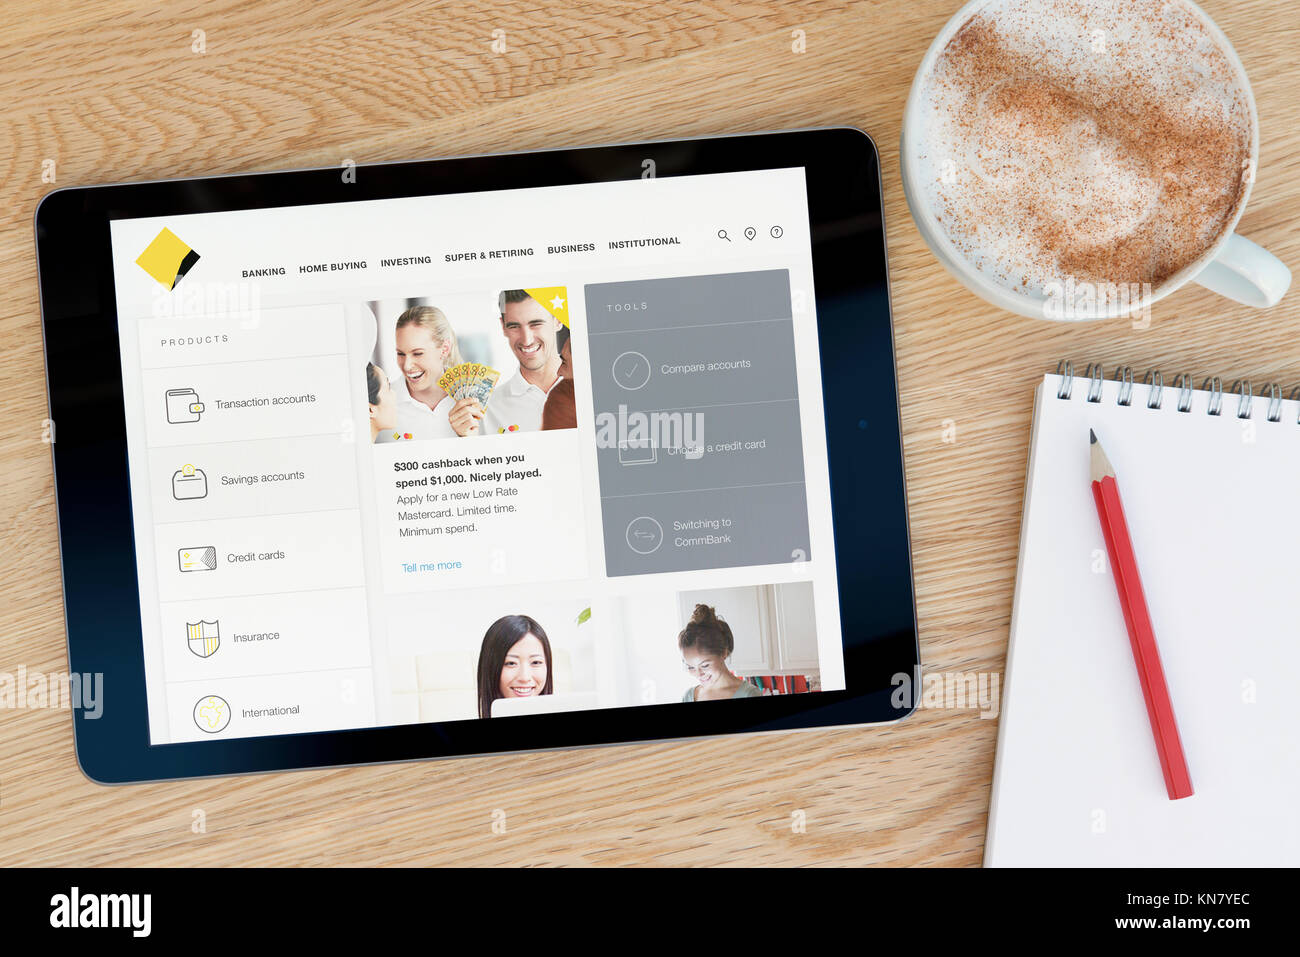 Commonwealth Bank Stock Photos & Commonwealth Bank Stock Images ...